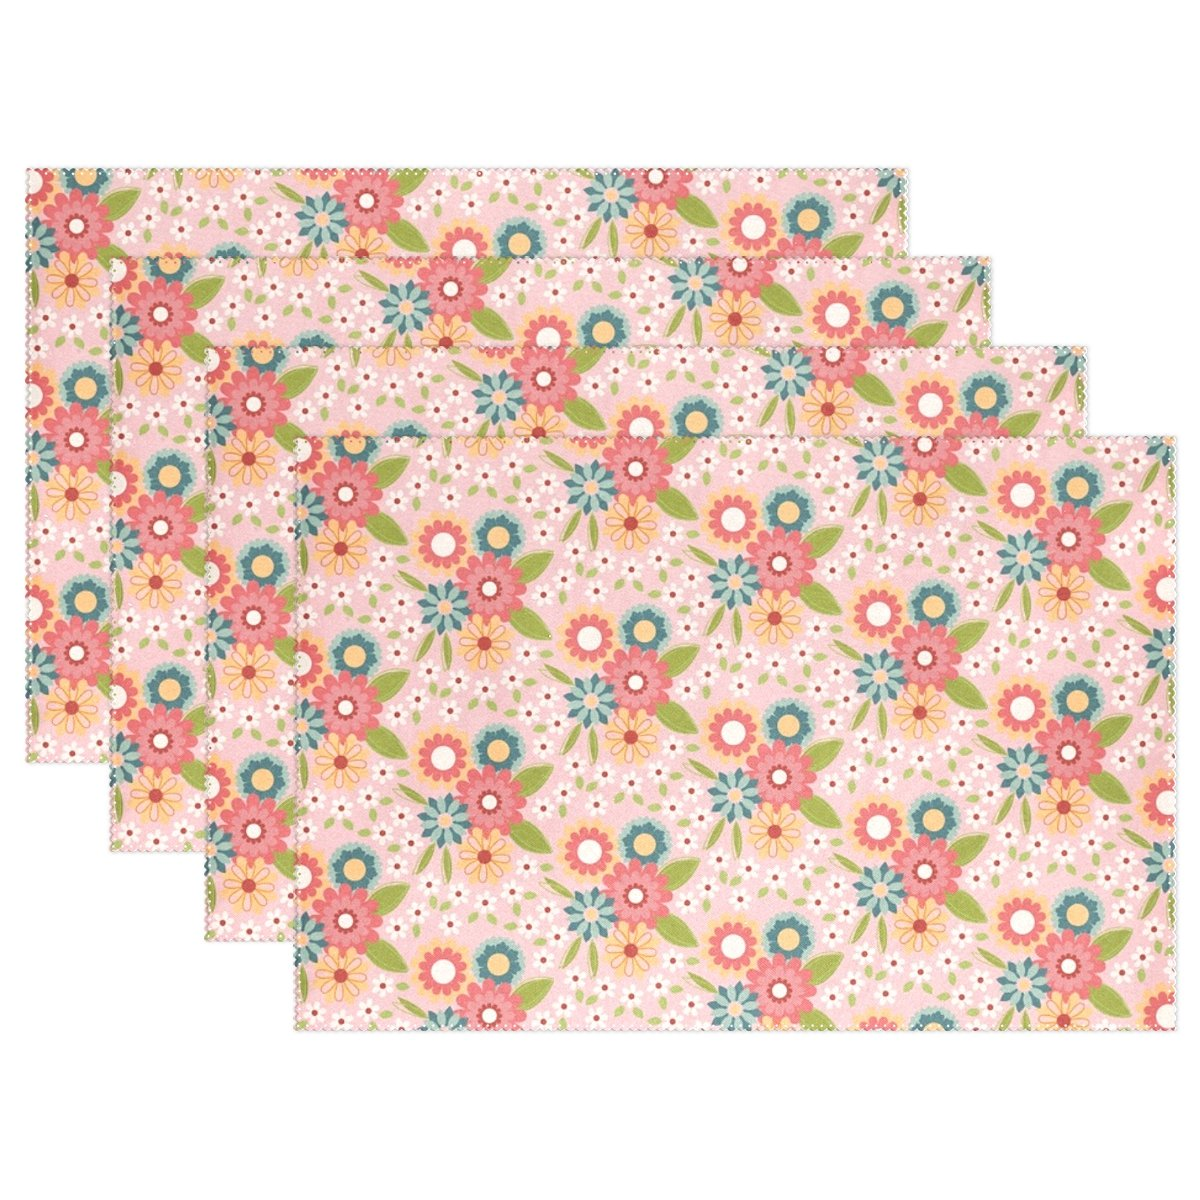 YPink Paper Texture Flowers Placemats Set Of 4 Heat Insulation Stain Resistant For Dining Table Durable Non-slip Kitchen Table Place Mats